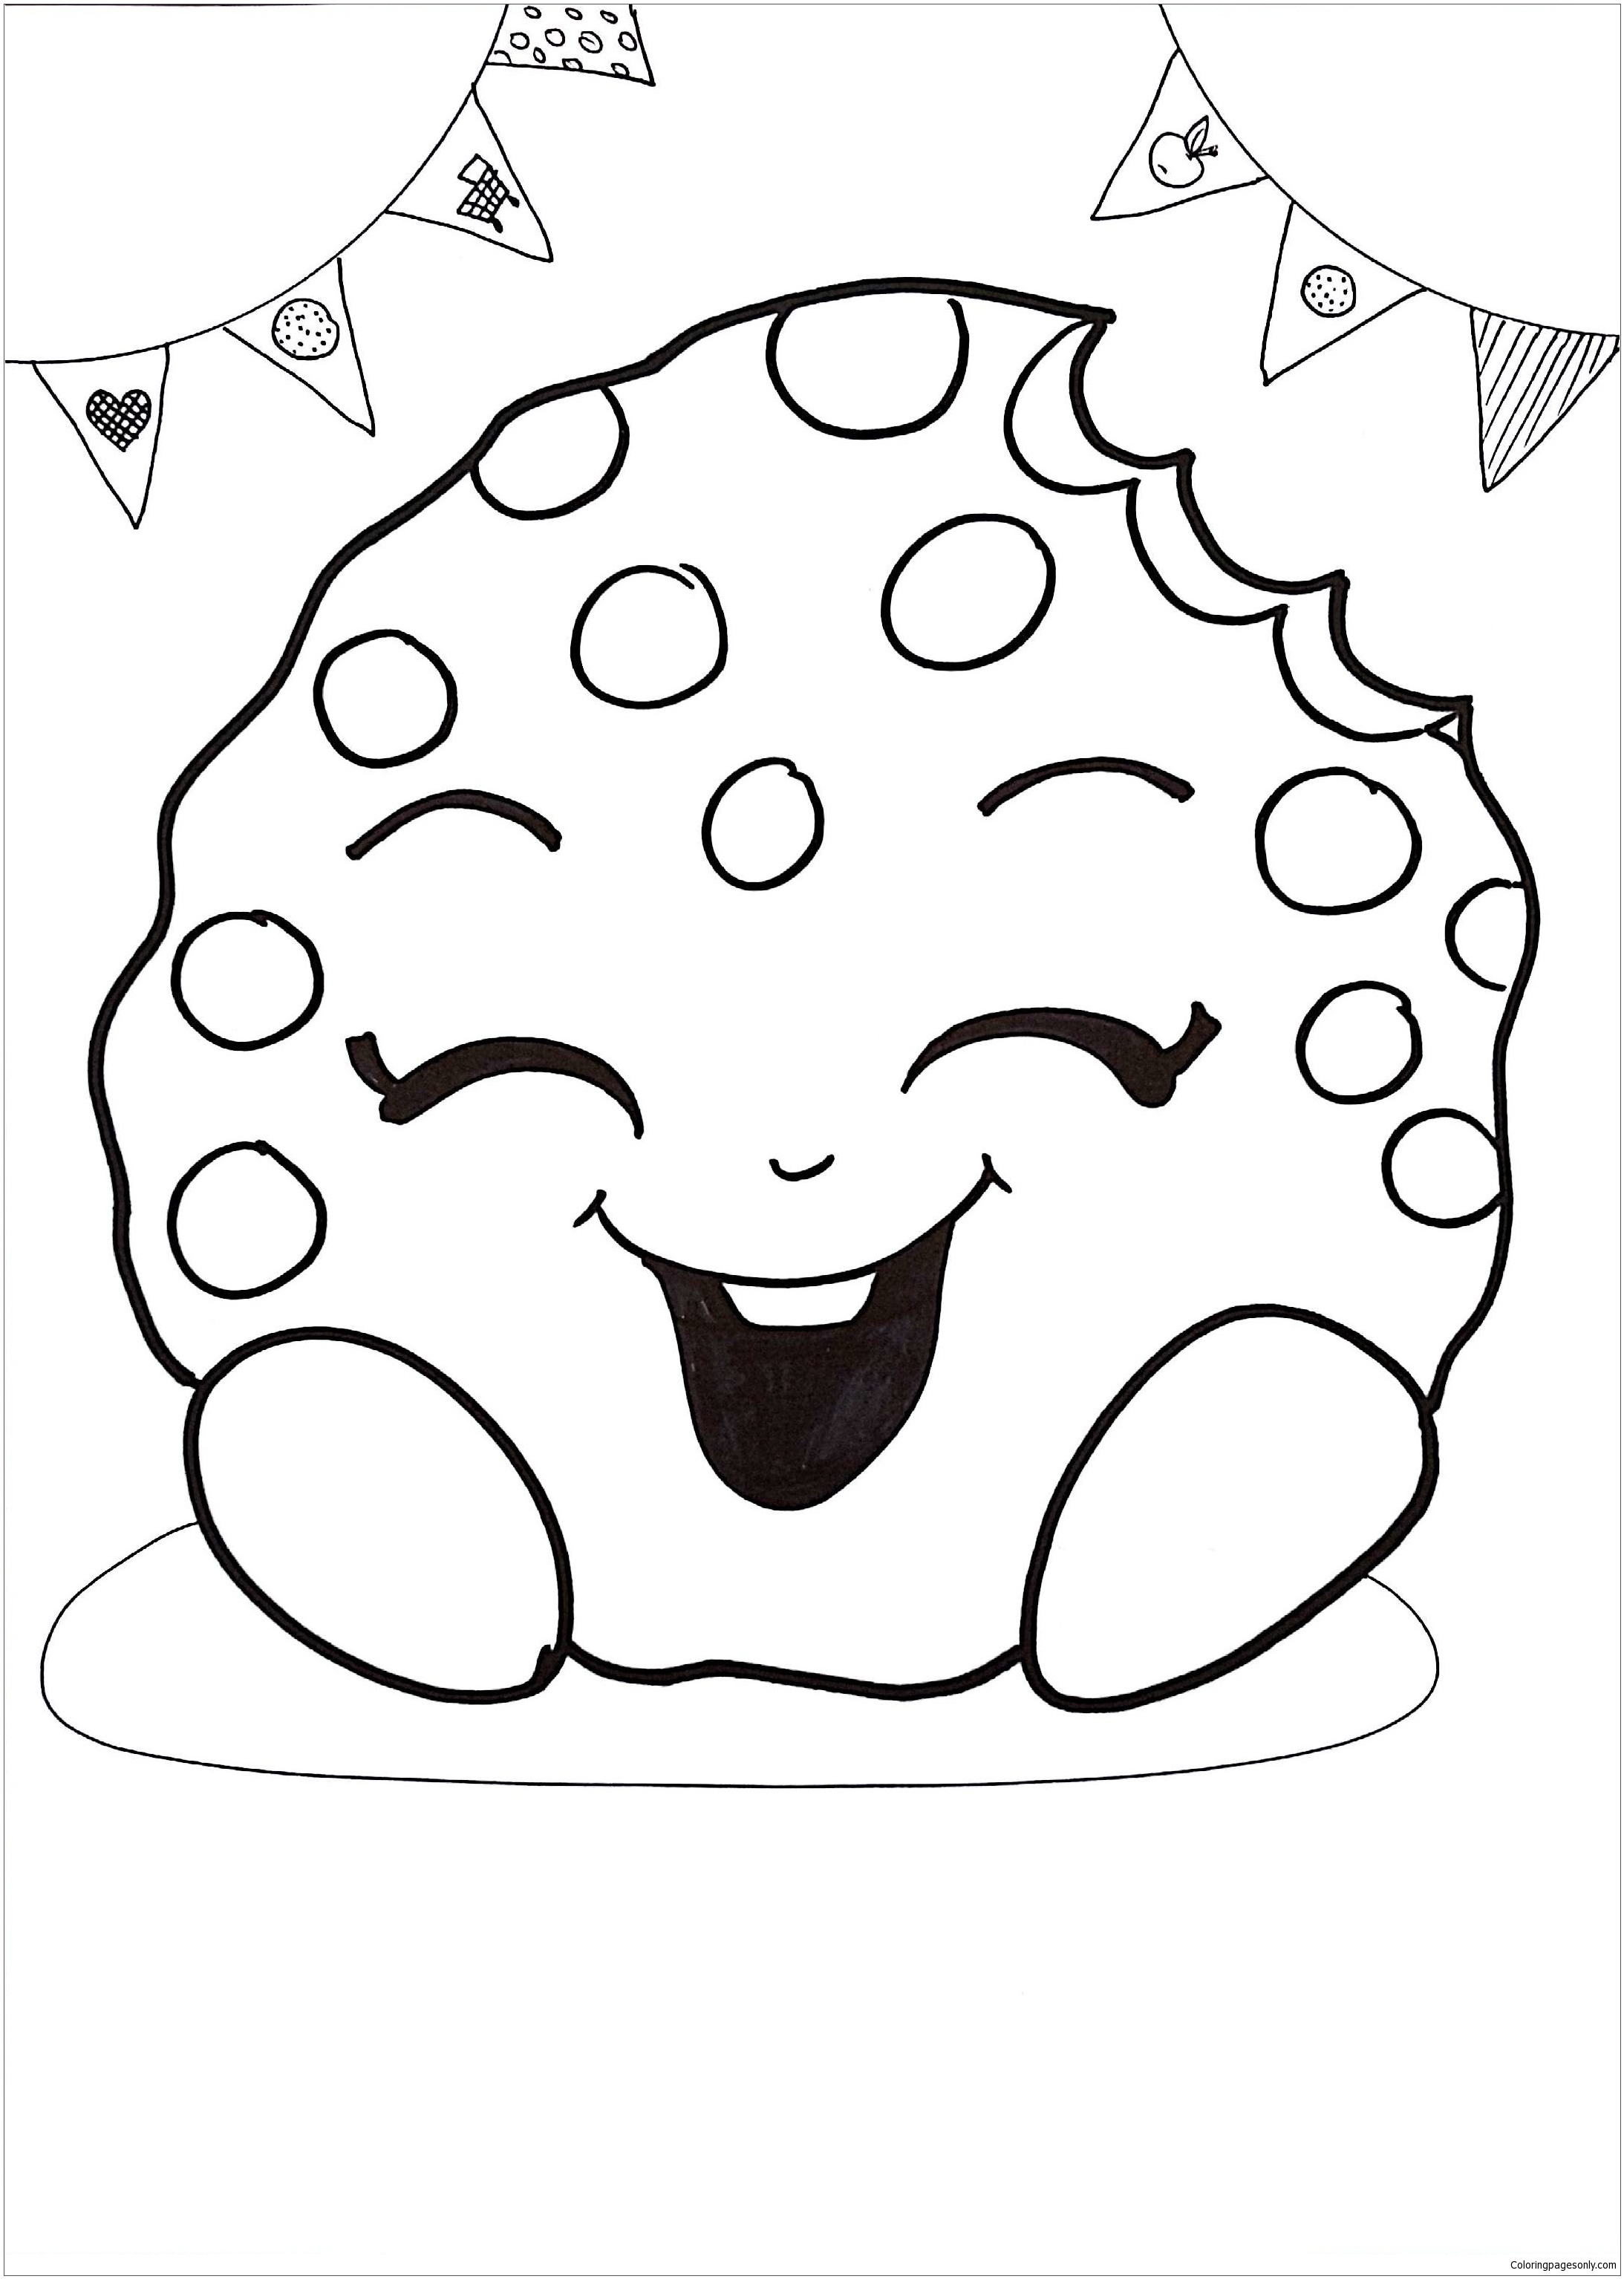 - Kooky Cookie Shopkins Coloring Page - Free Coloring Pages Online